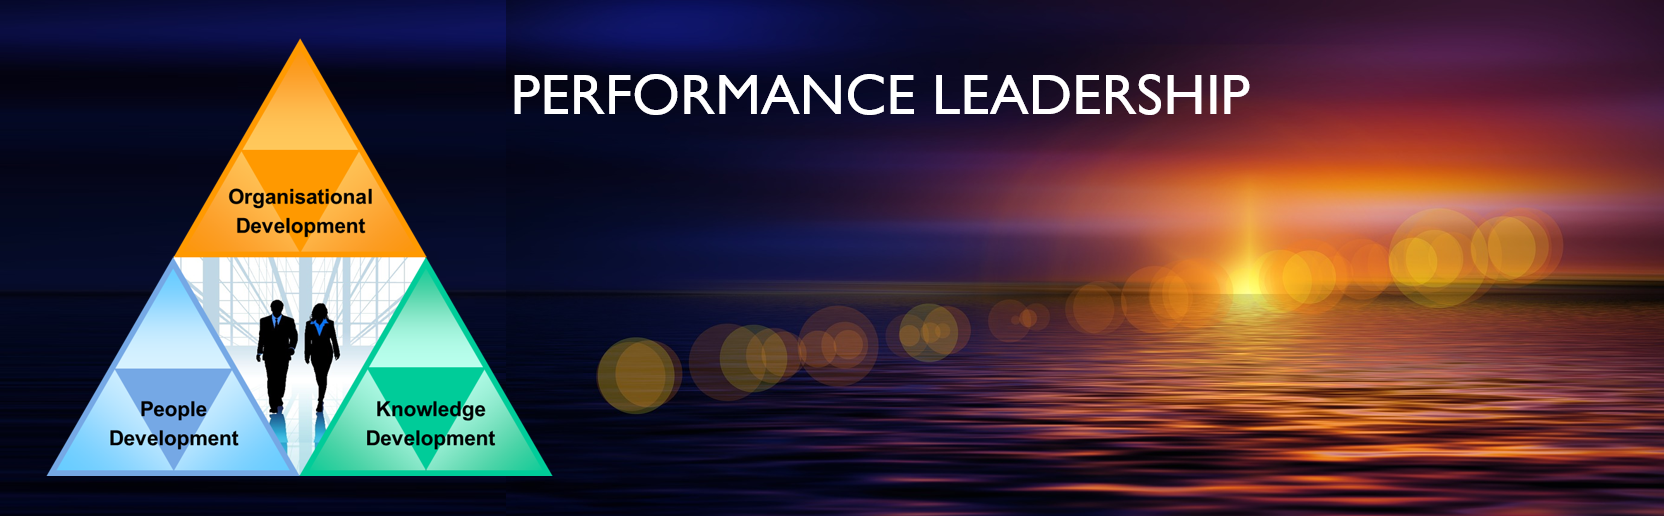 Performance Leadership - Trimentis